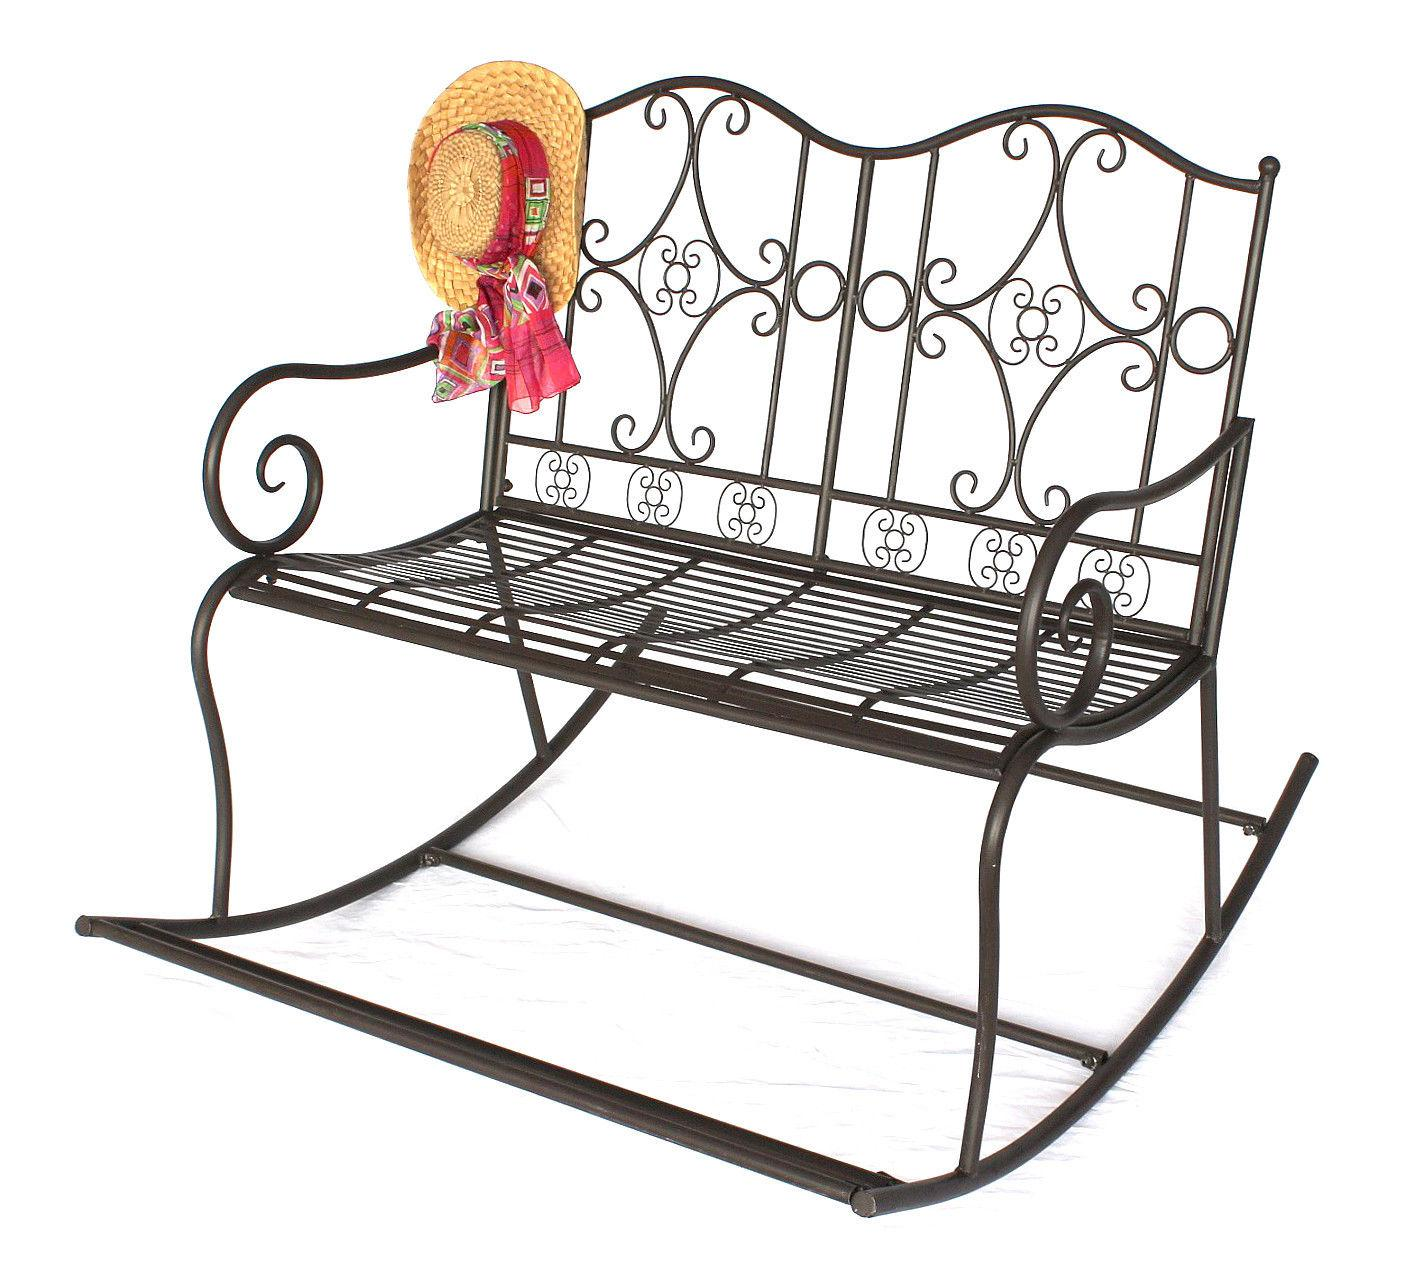 schaukelbank dy140489 gartenbank aus metall bank 105 cm sitzbank garten schaukel ebay. Black Bedroom Furniture Sets. Home Design Ideas